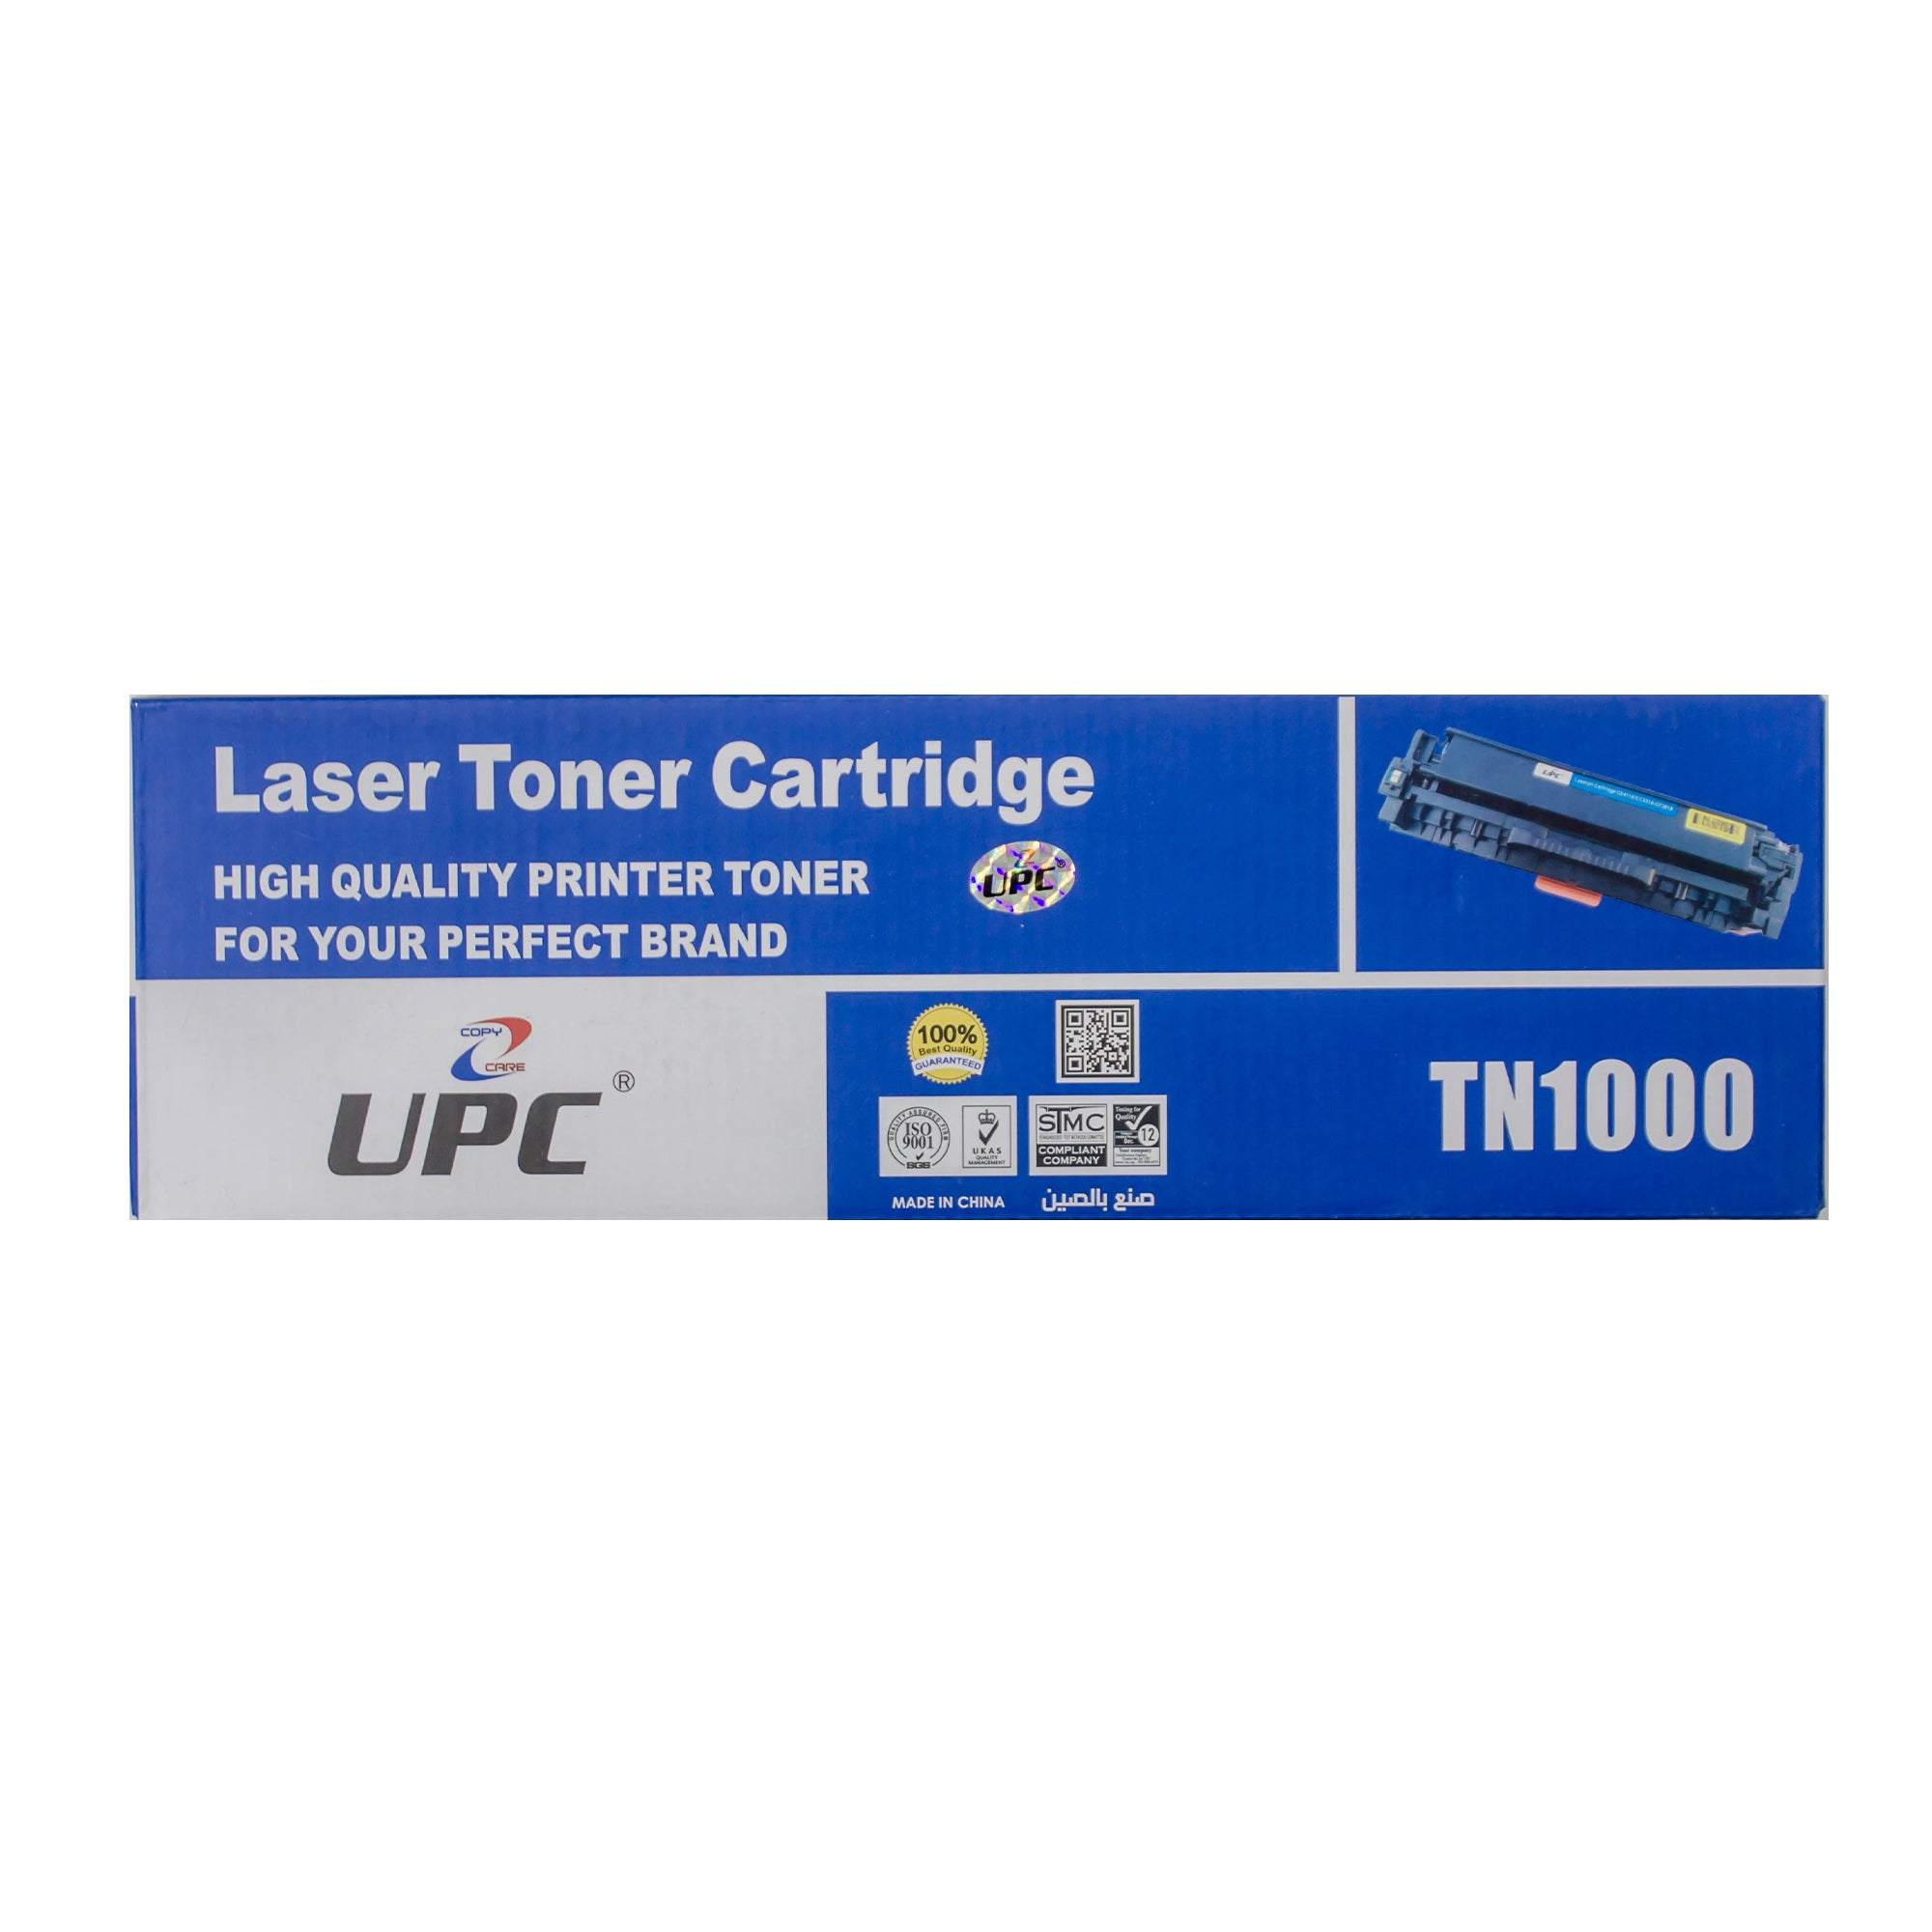 UPC TN1000 Black Laser Toner Compatible with Brother Laser Printers